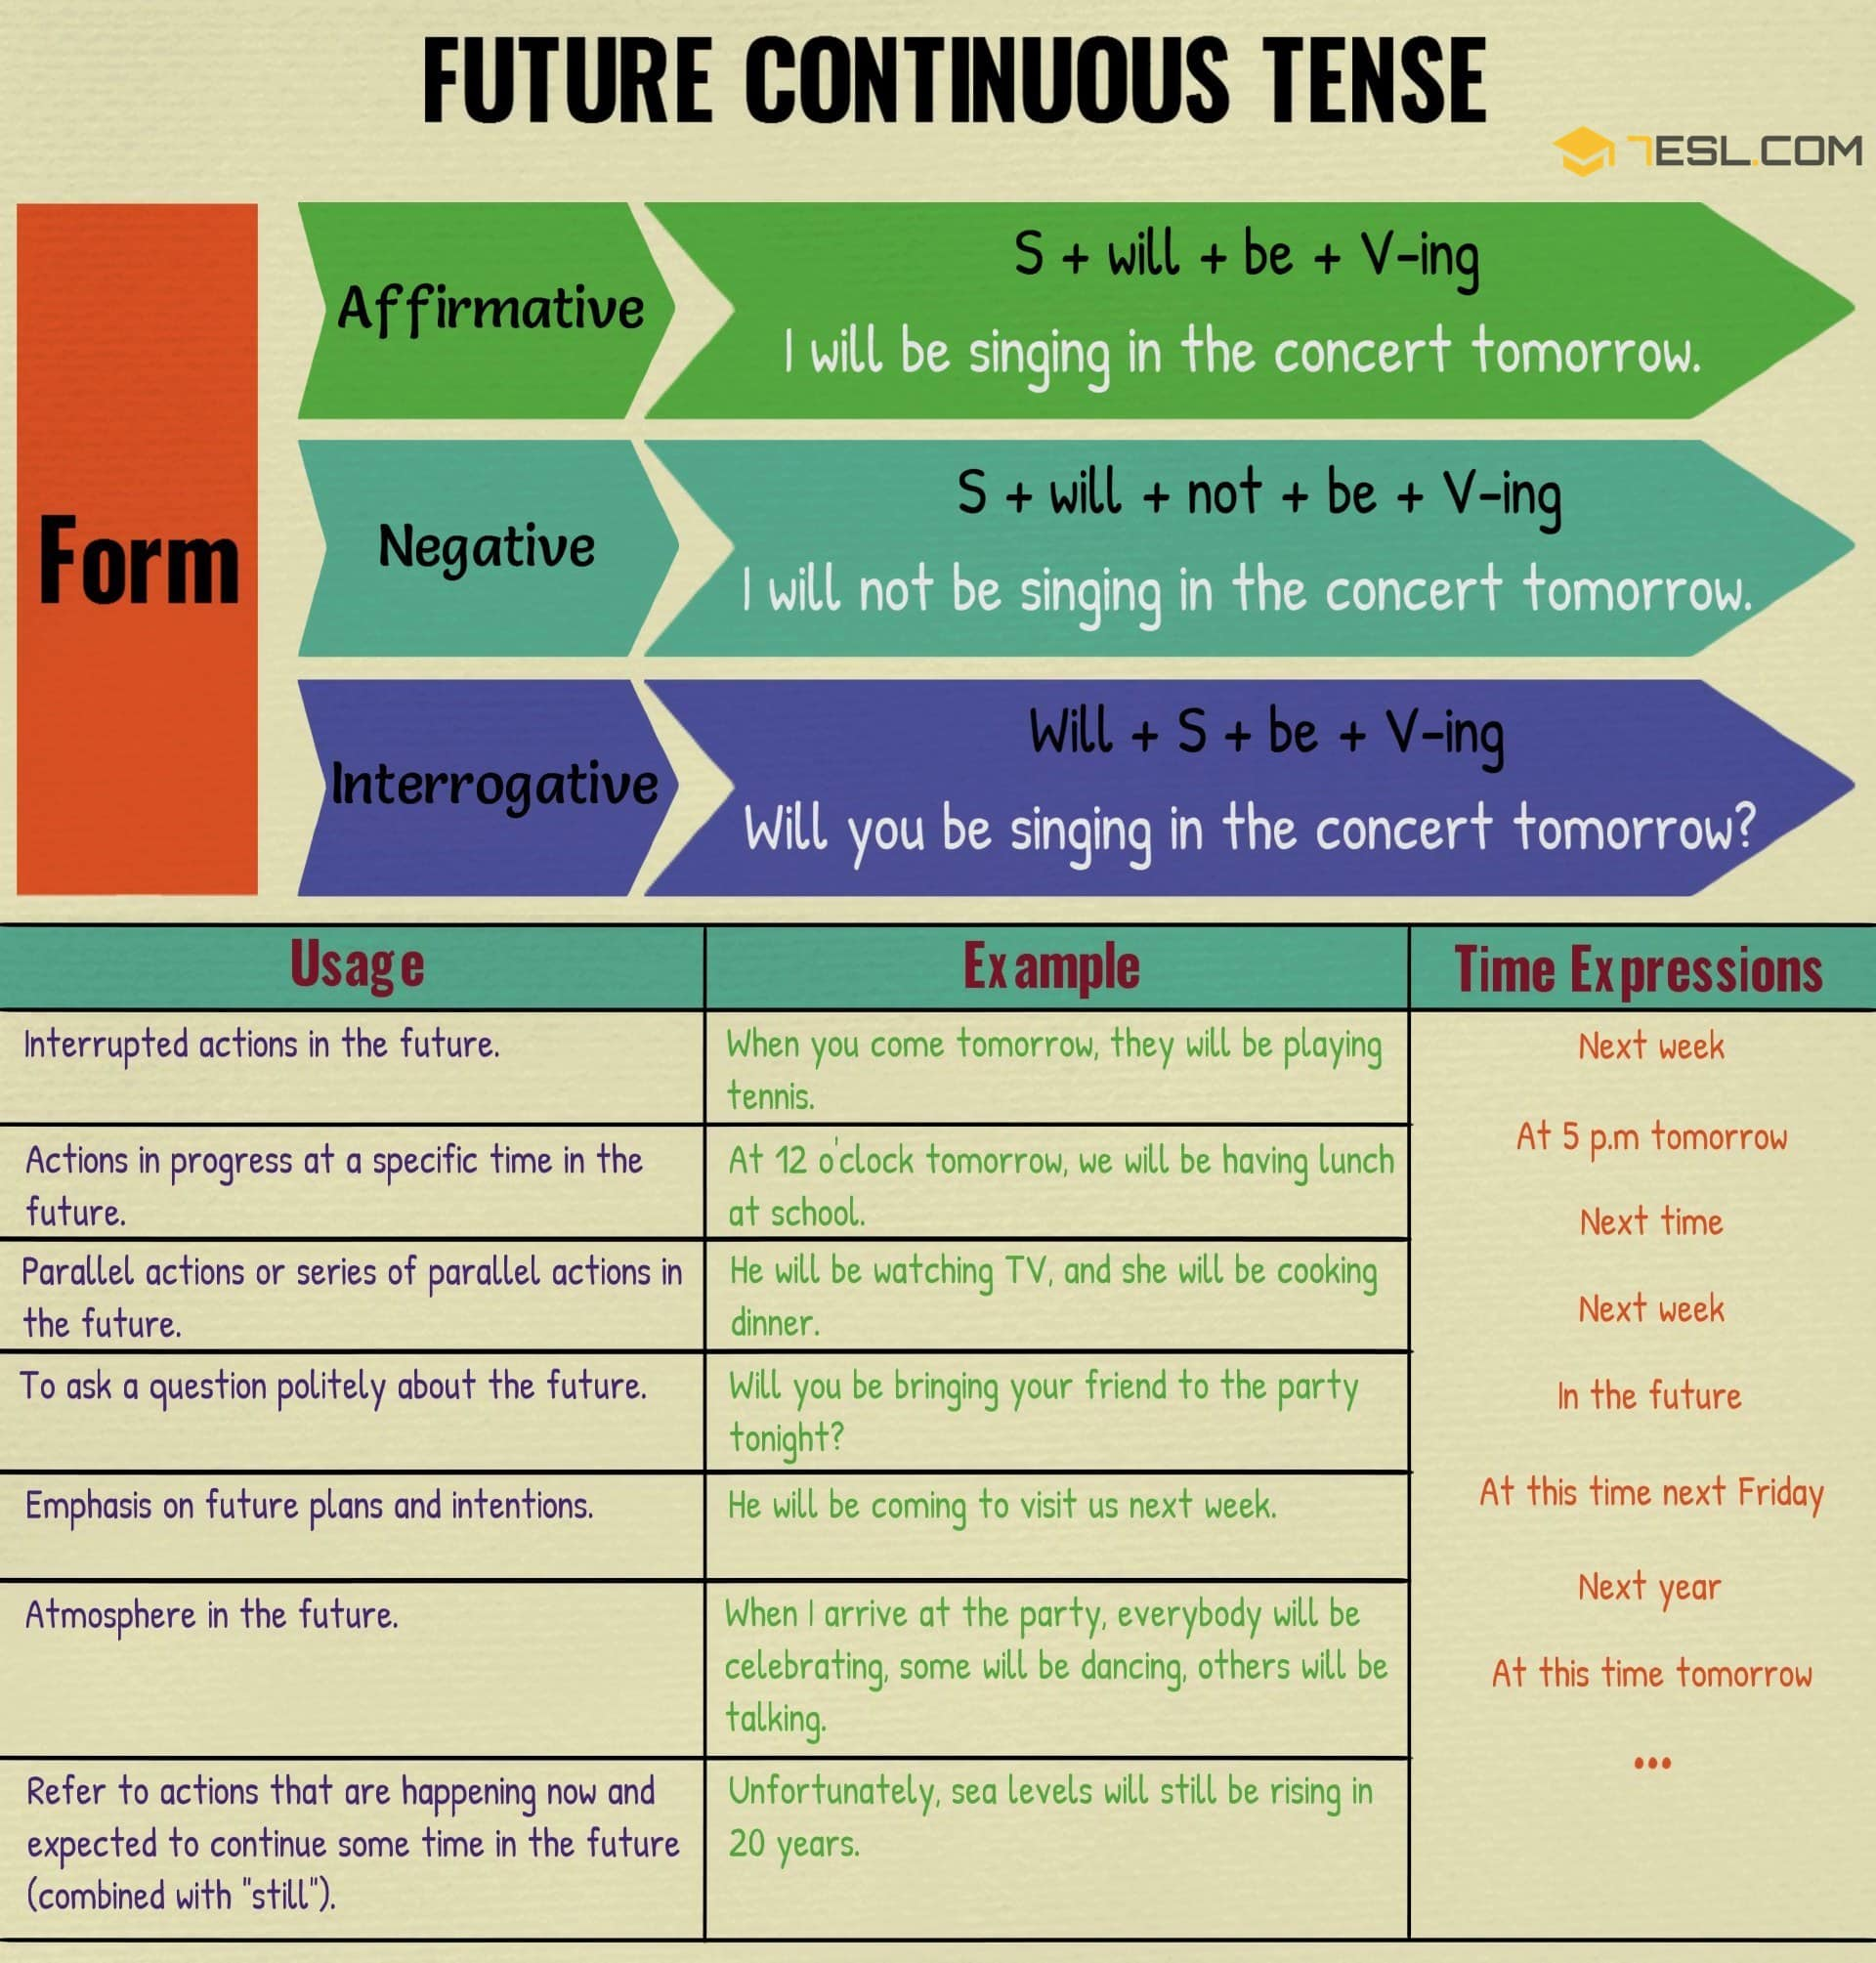 Future Continuous Tense: Useful Rules & Examples 2